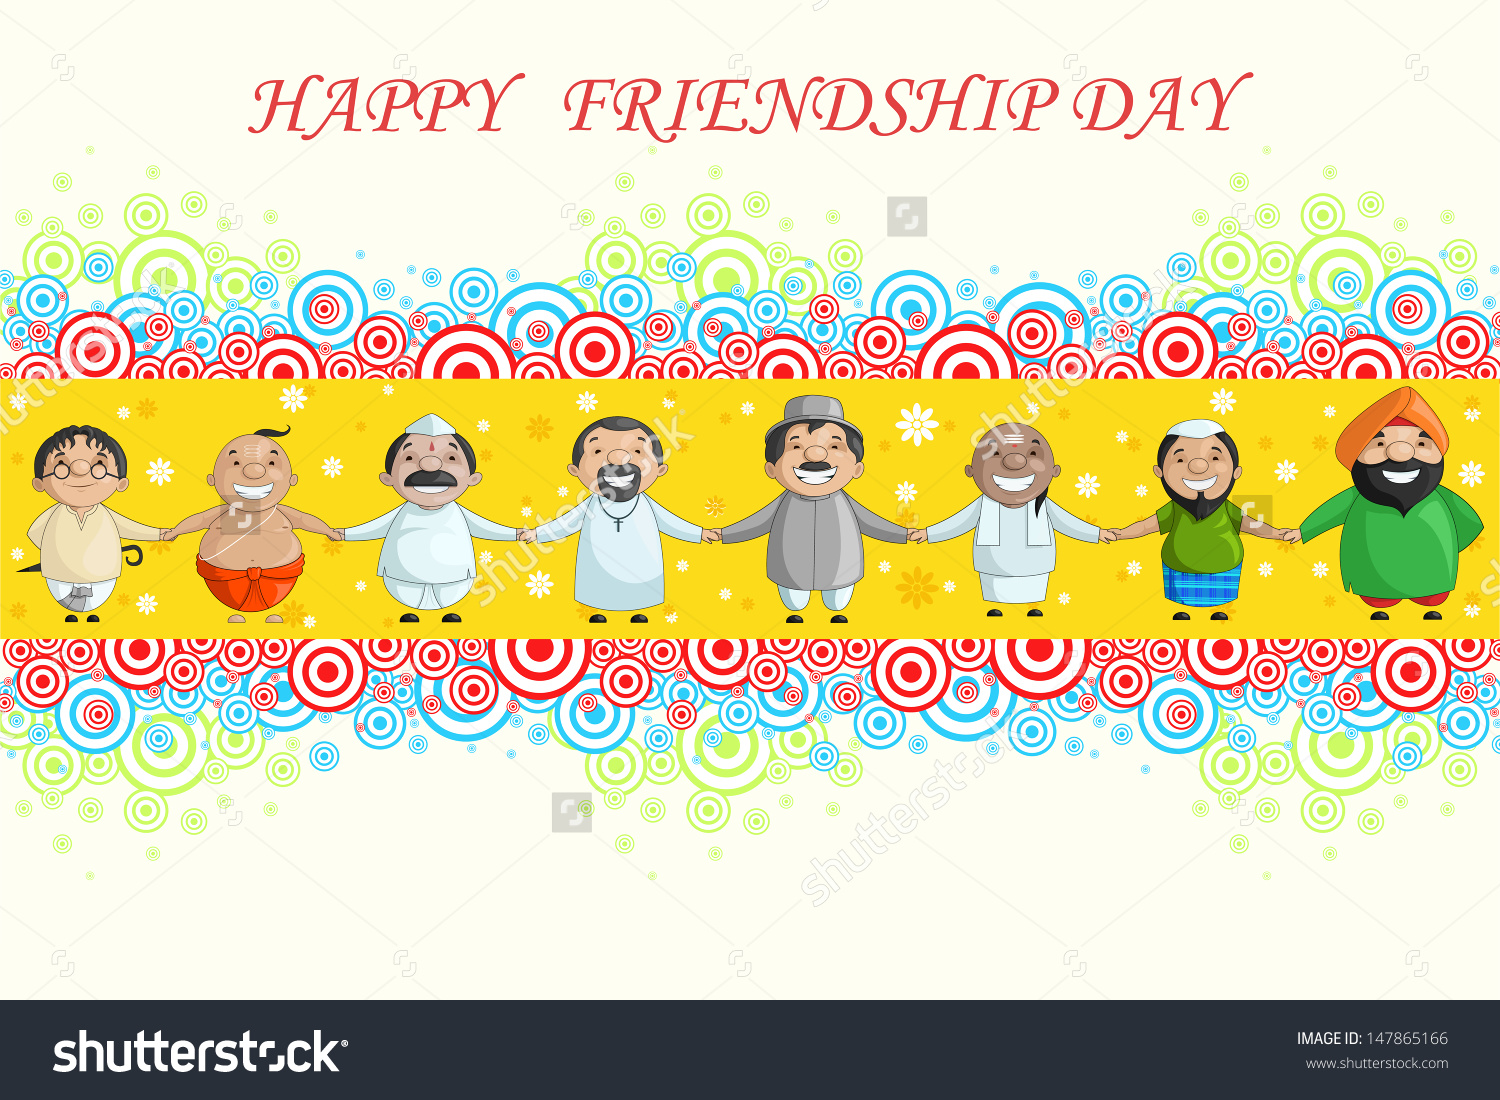 Vector Illustration Of Multiracial People Wishing Happy Friendship.